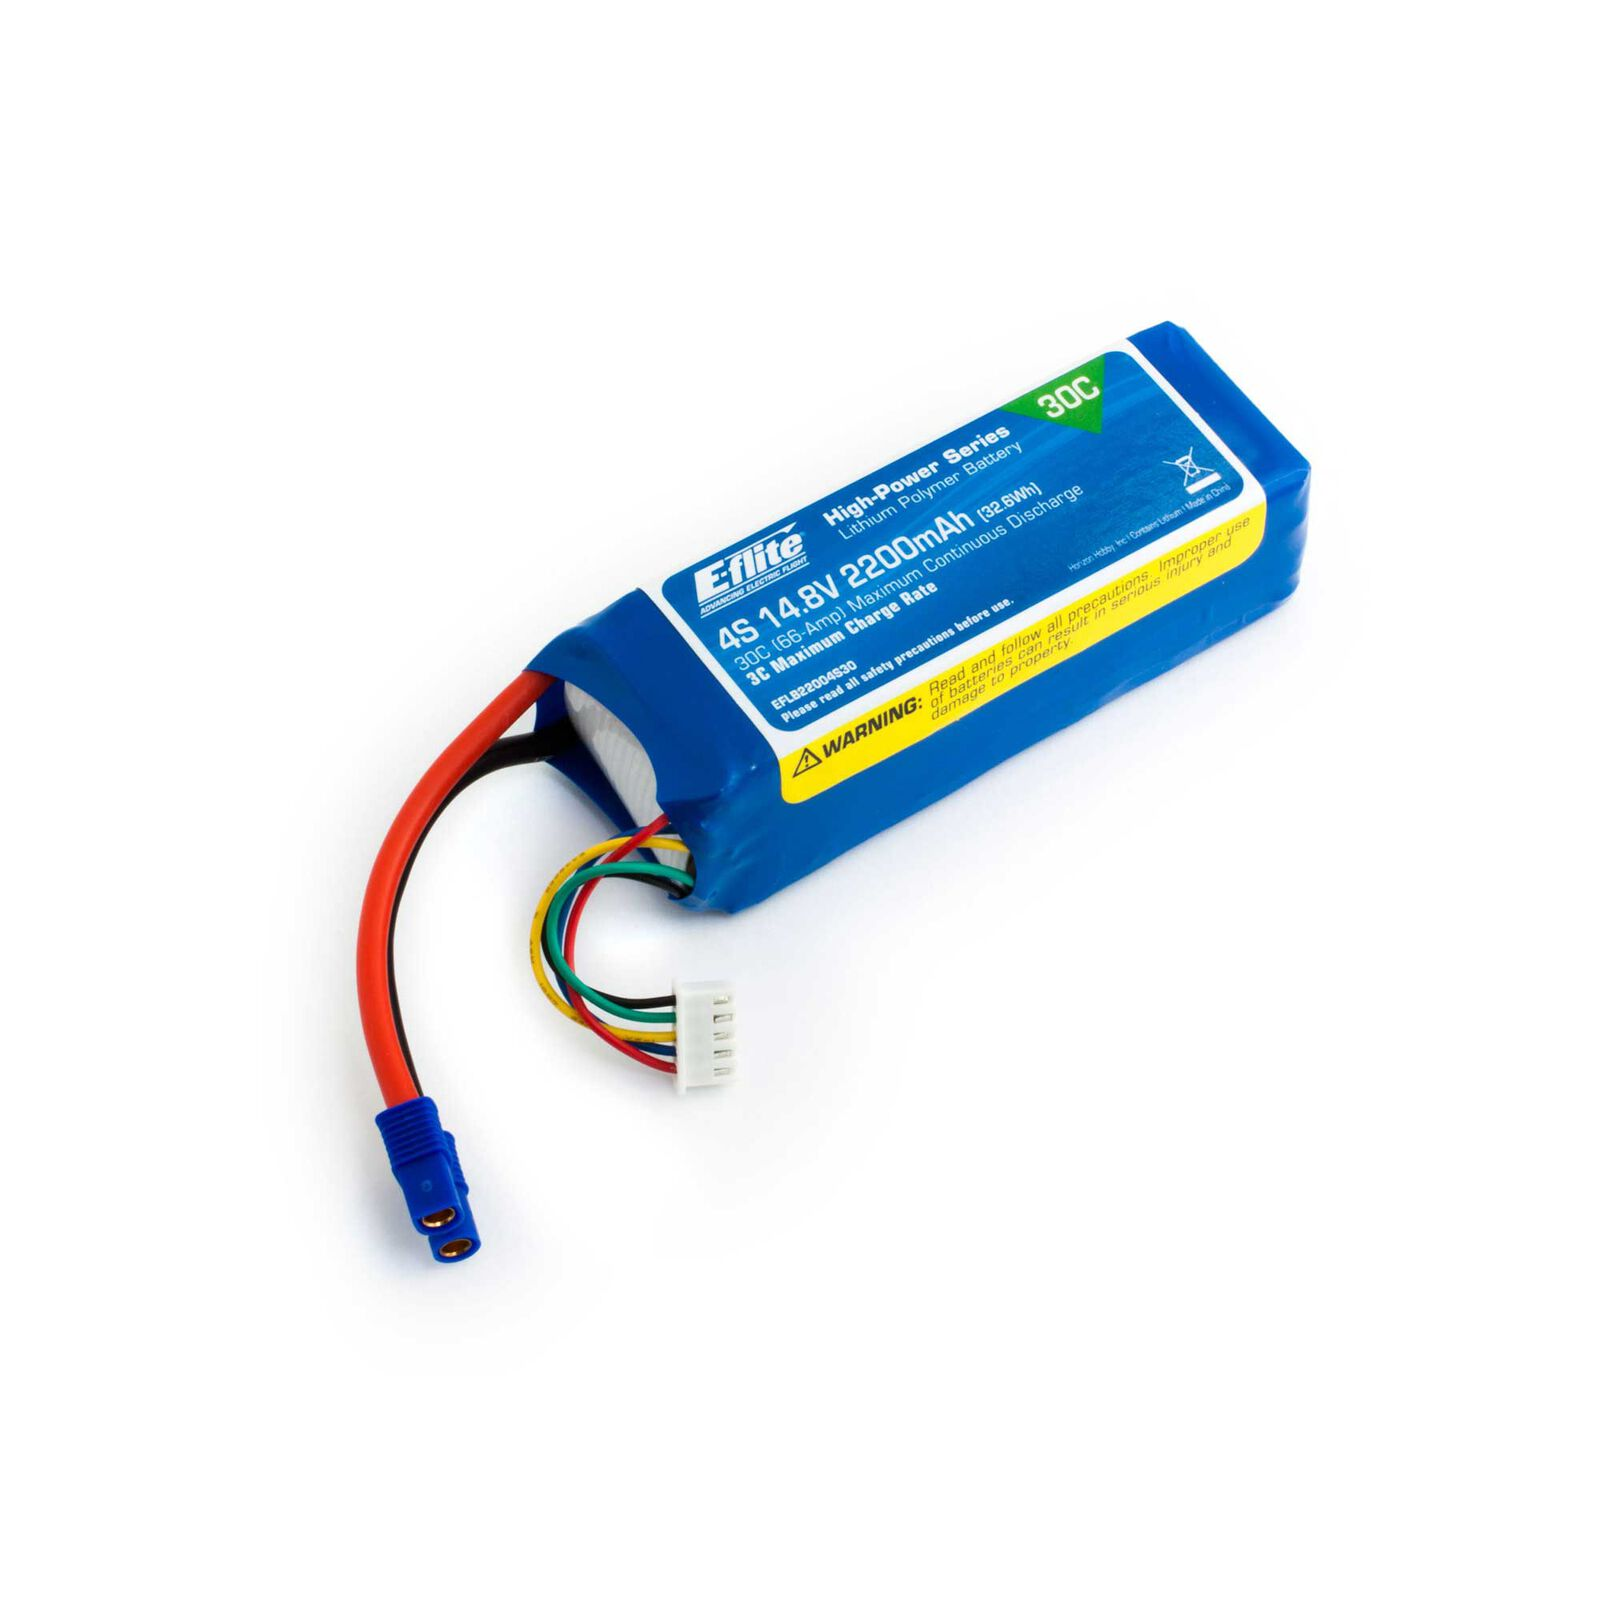 14.8V 2200mAh 4S 30C LiPo, Battery: EC3